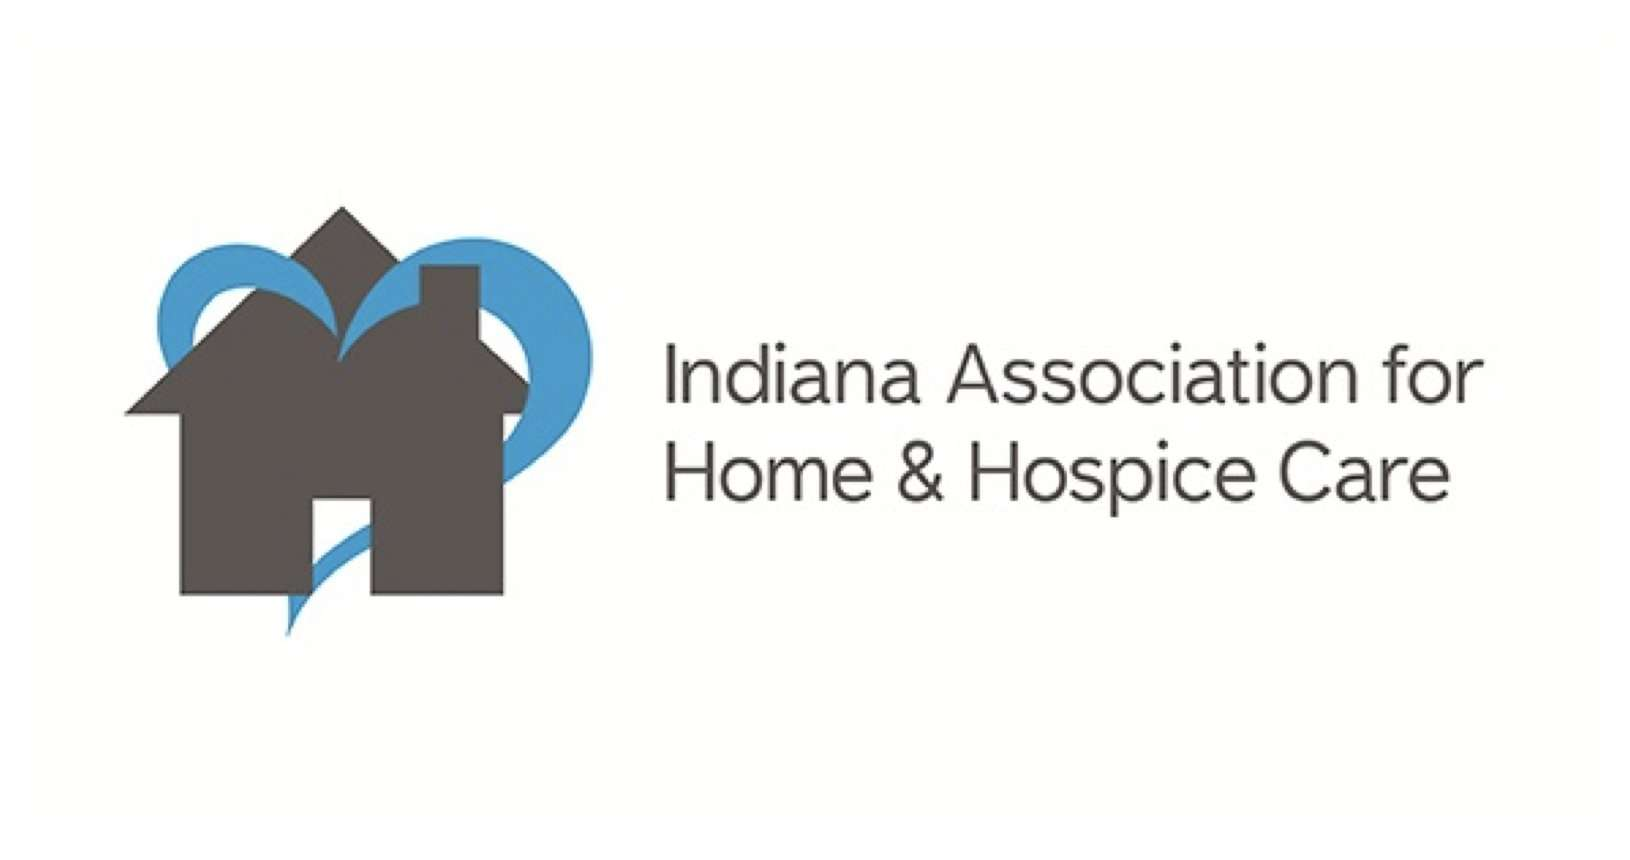 indiana-association-for-home-and-hospice-care